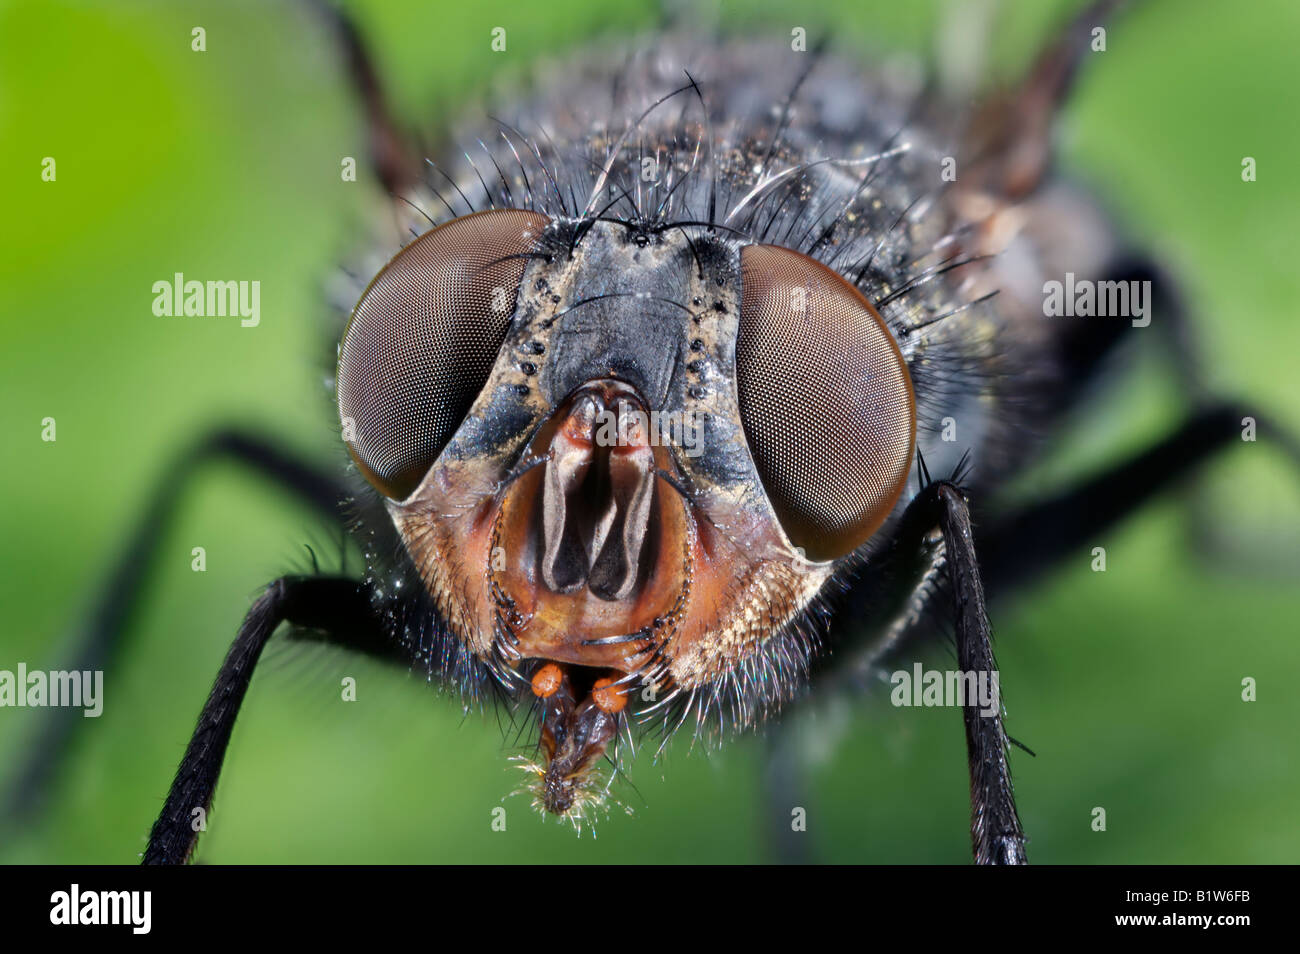 Compound Eyes of a Common House Fly - Stock Image